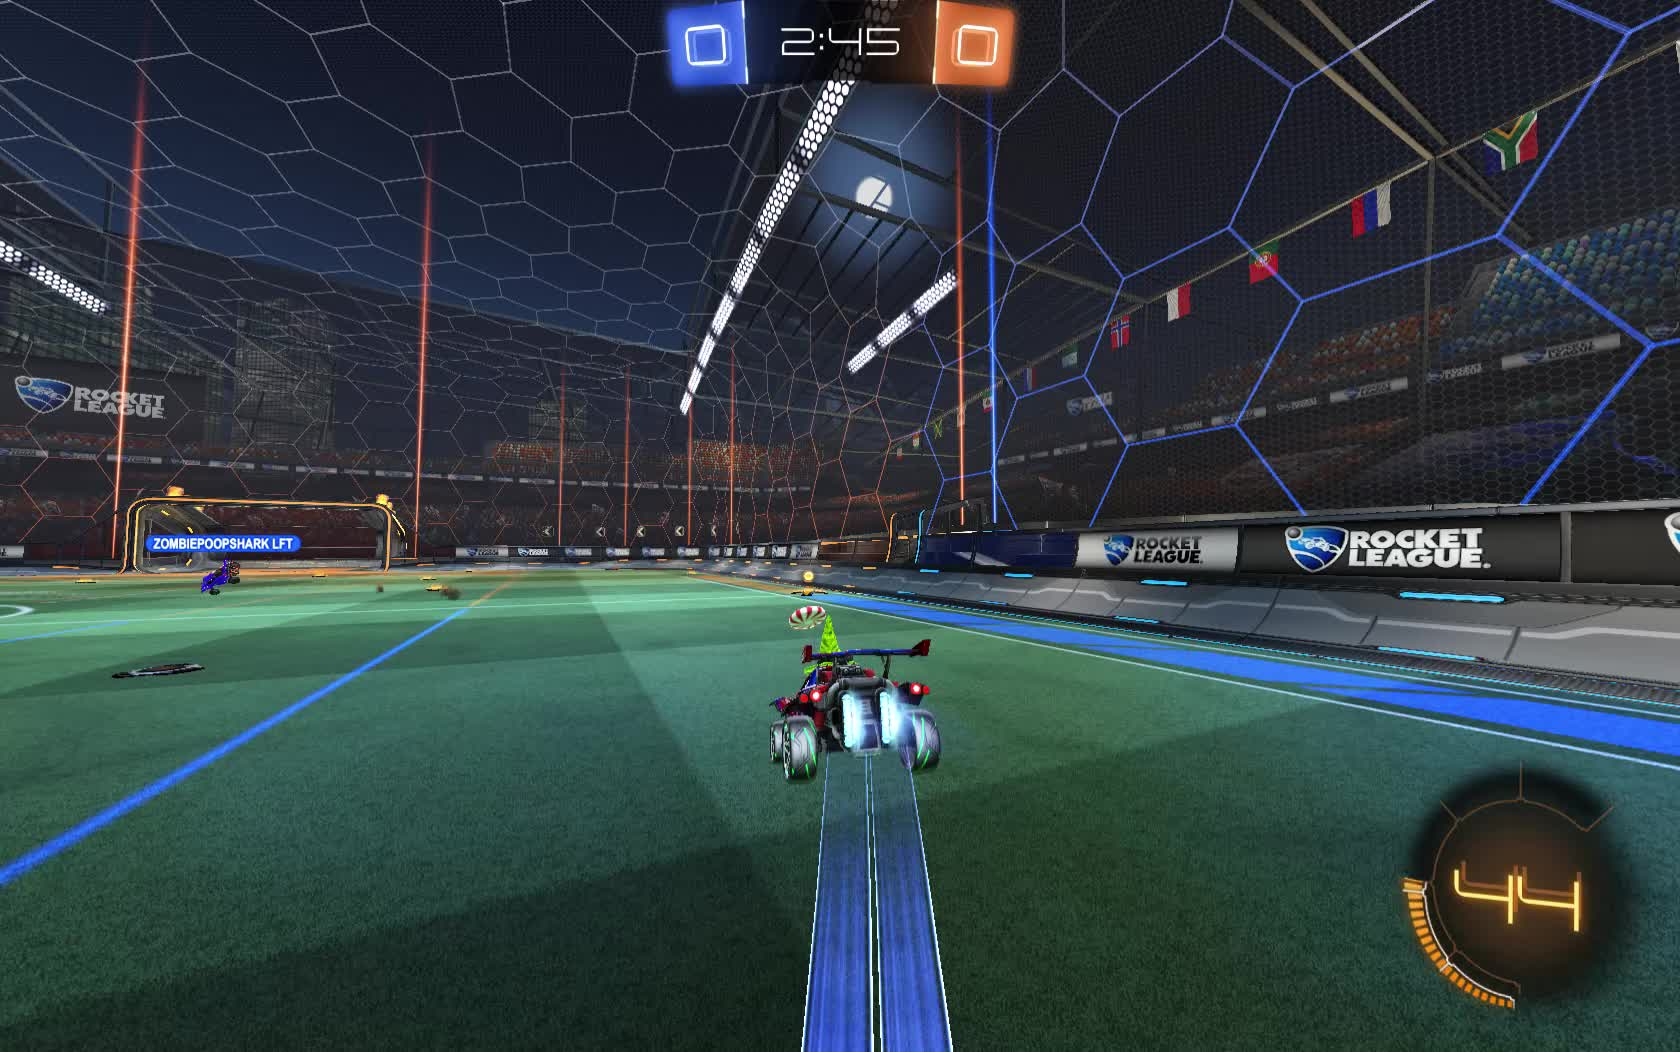 rocketleague, Perfect pass, Perfect BOOM GIFs